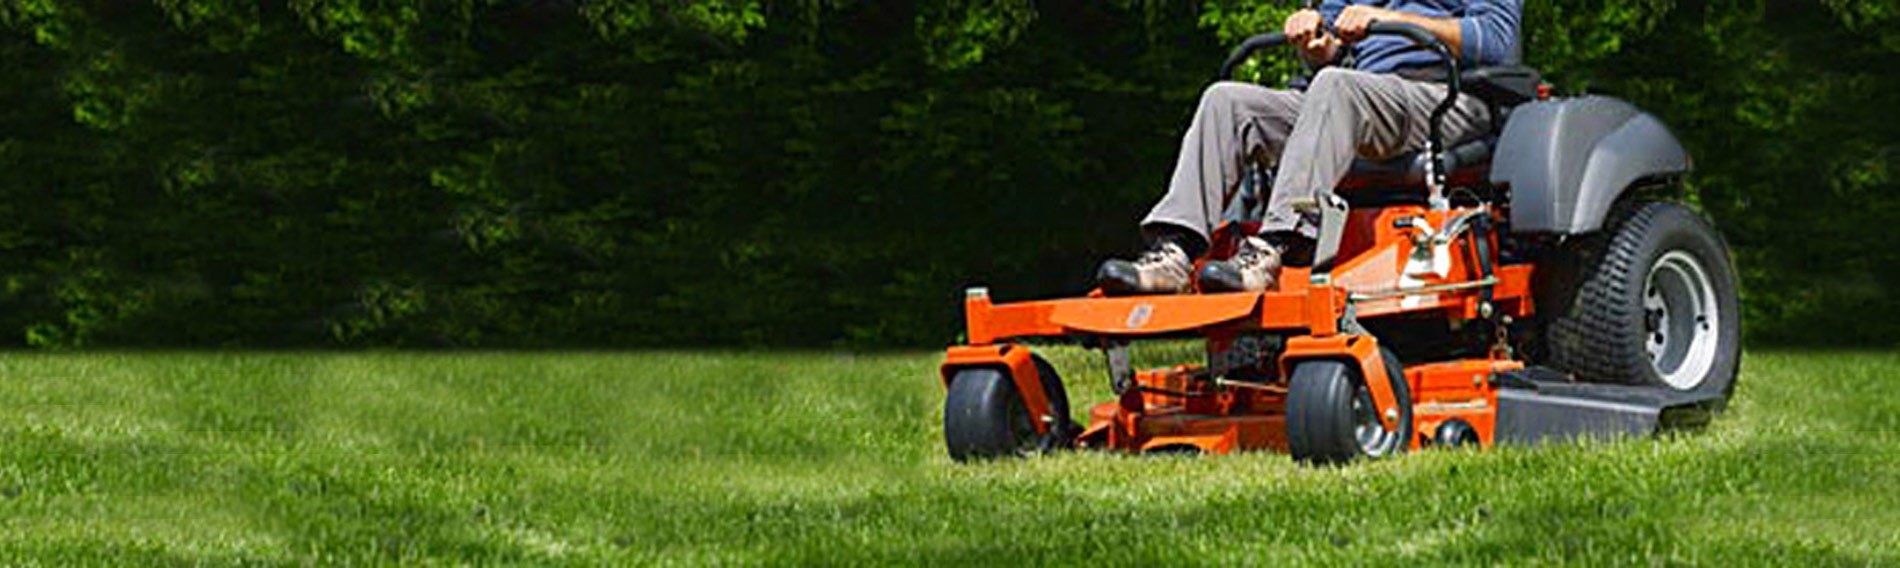 zero-turn-mower-HomePage-Slider